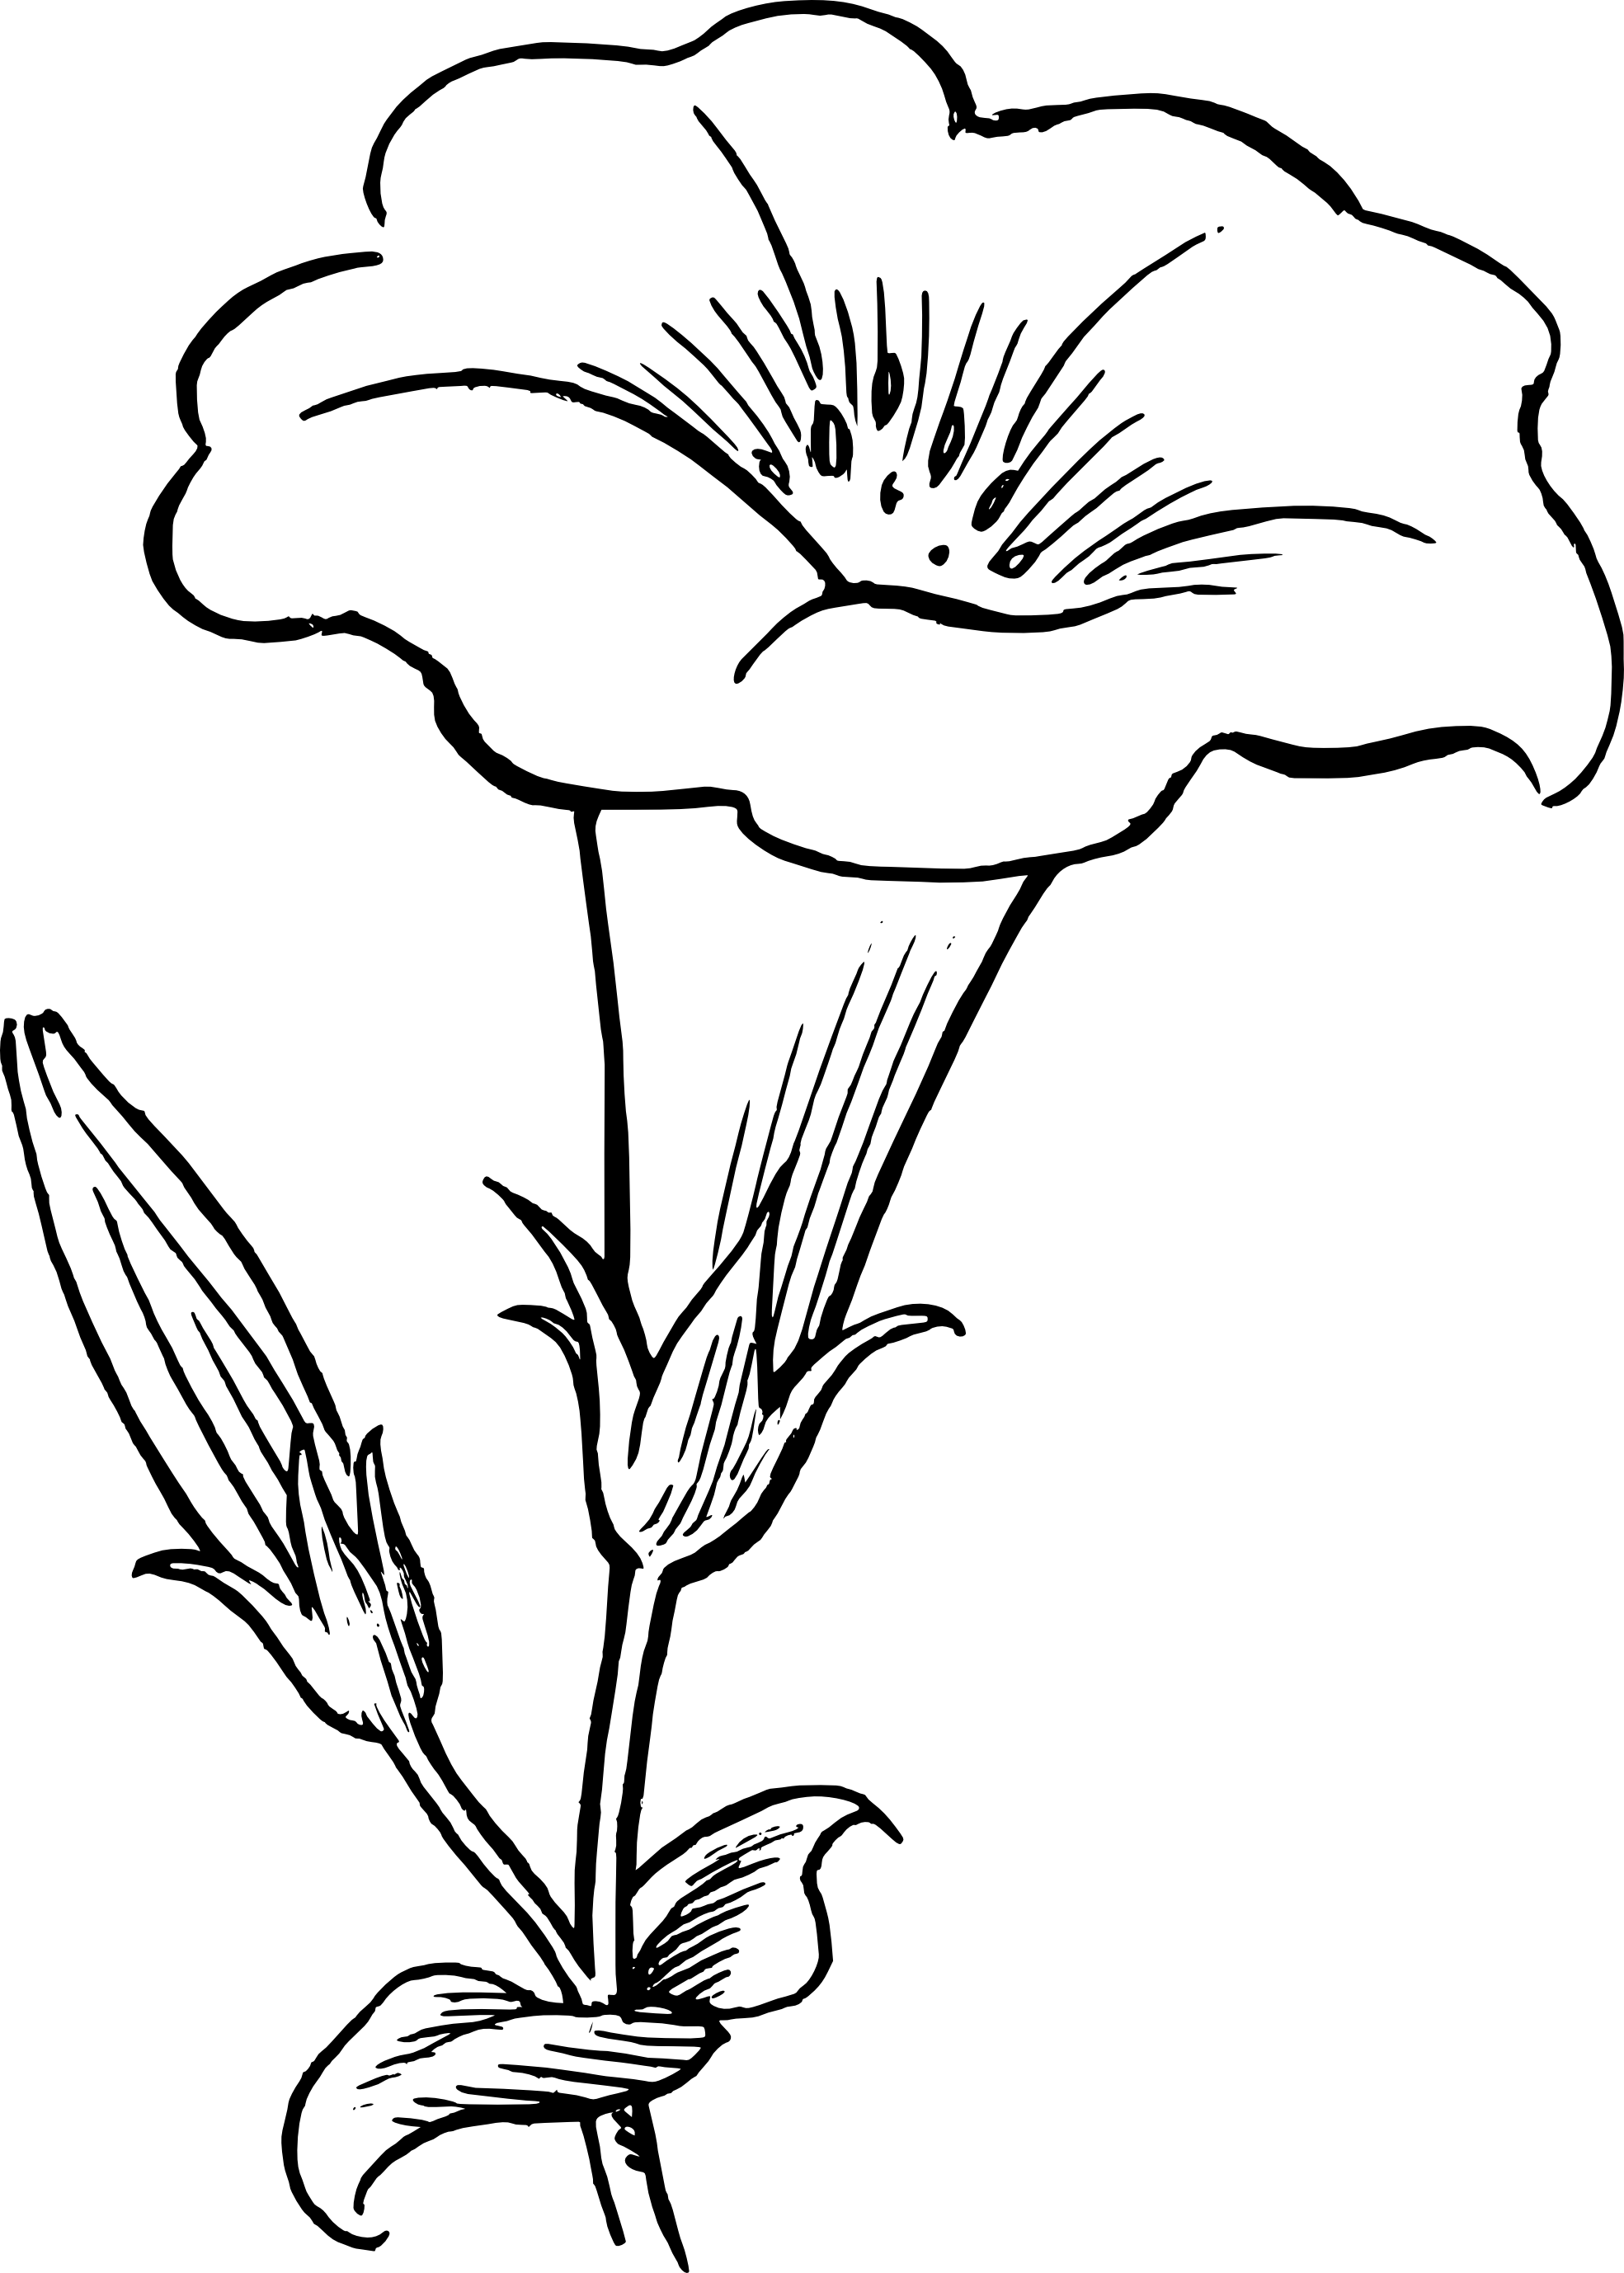 Line Art Flowers : Flowers line drawing images clipart best